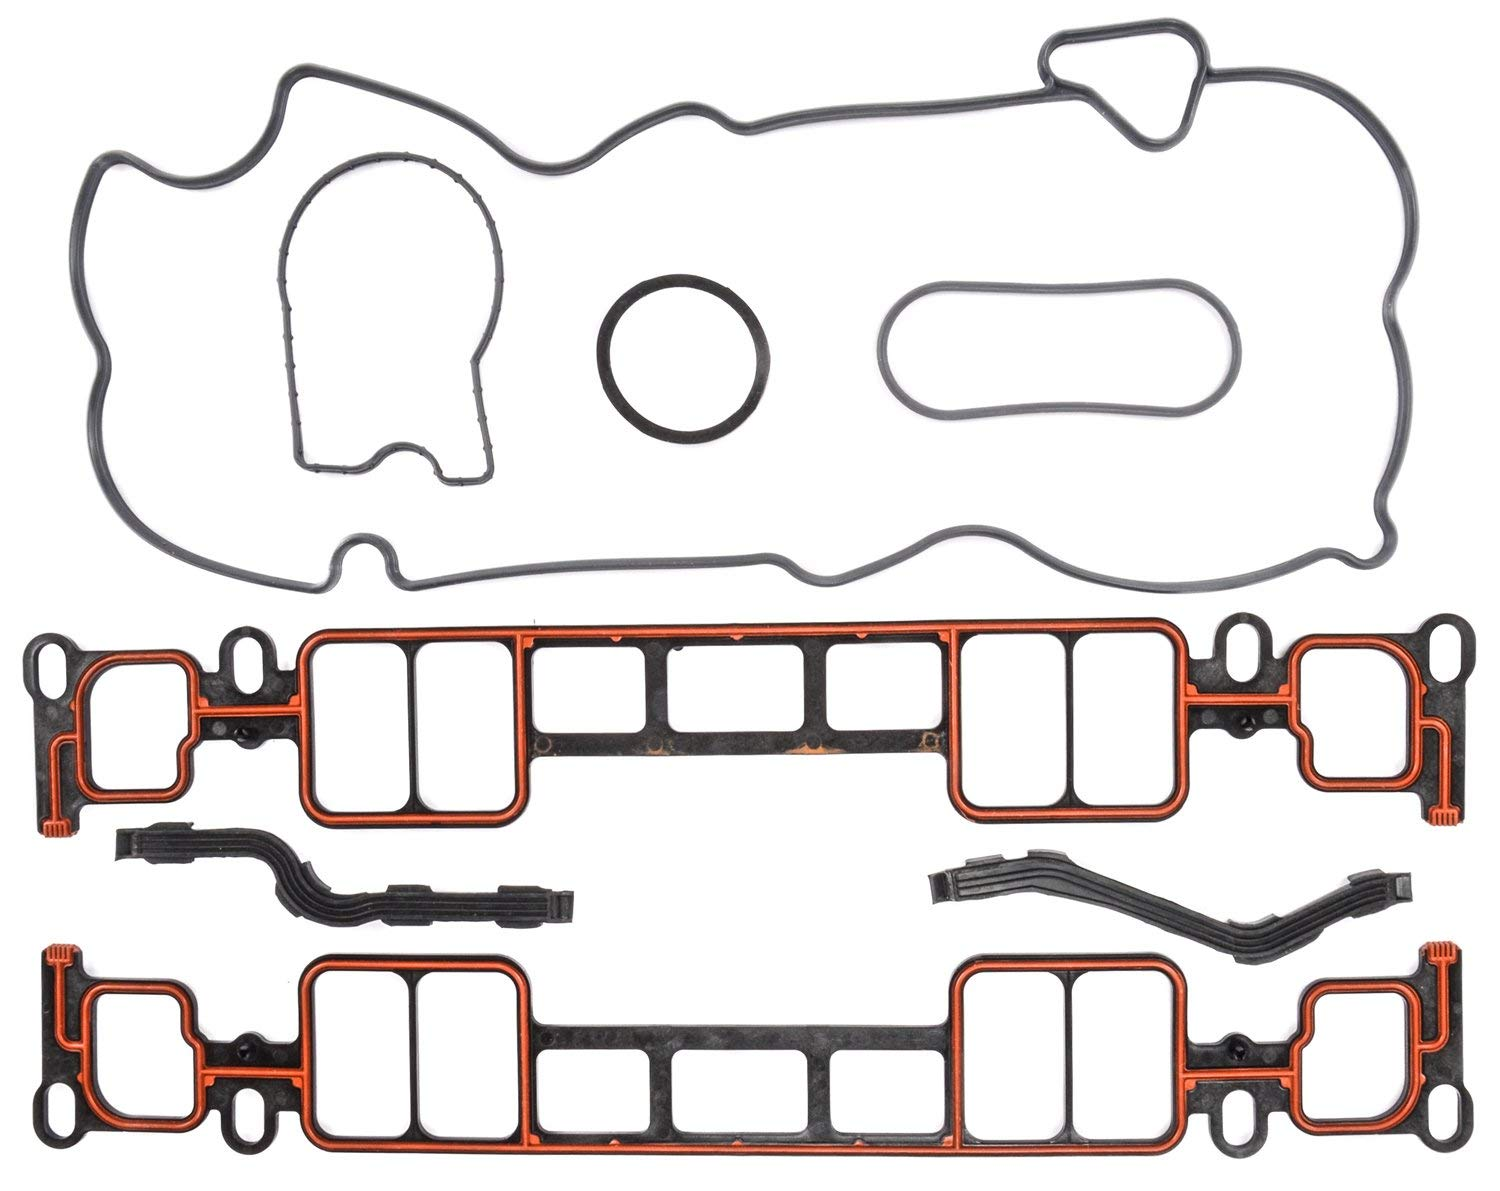 JEGS 210009 Intake Manifold Gaskets 1996-2002 Small Block Chevy 305 /& 350 Vortec